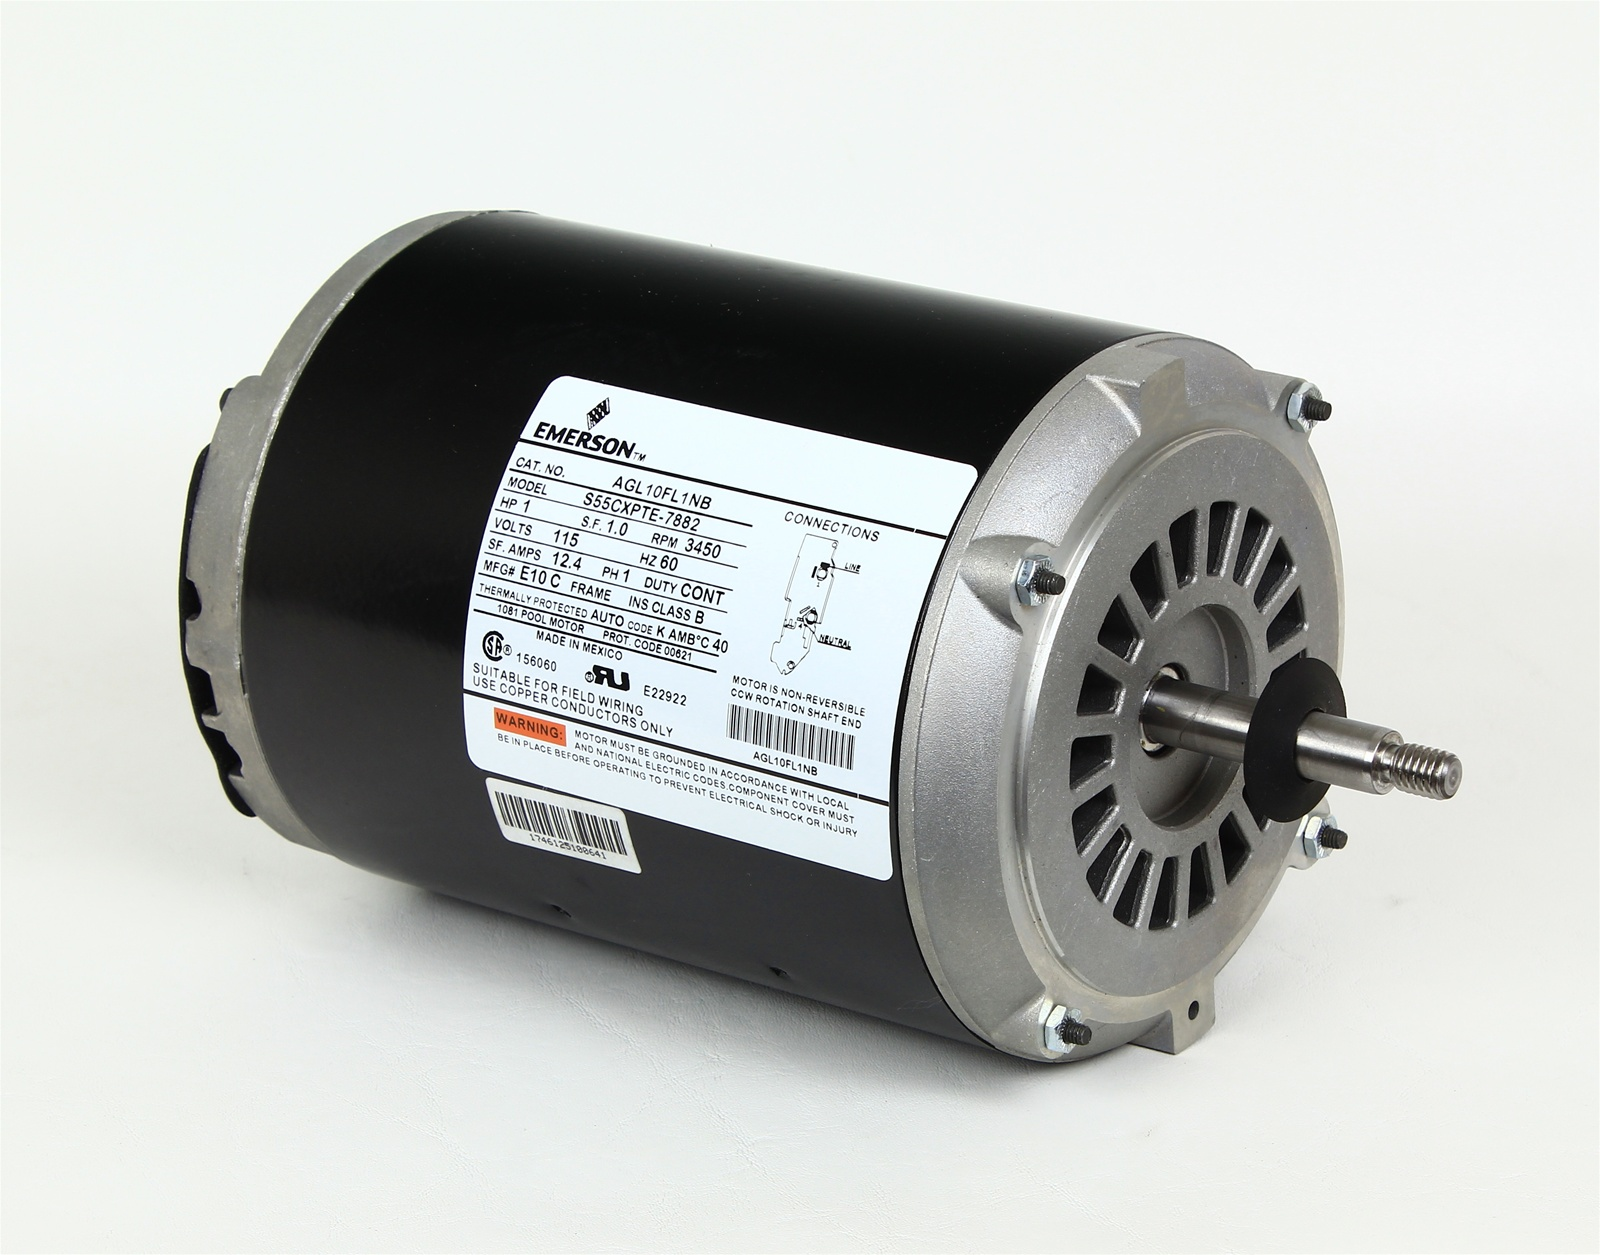 Softub Motor For Softub Pump Mtrem 6497 Soft Tub 1114015